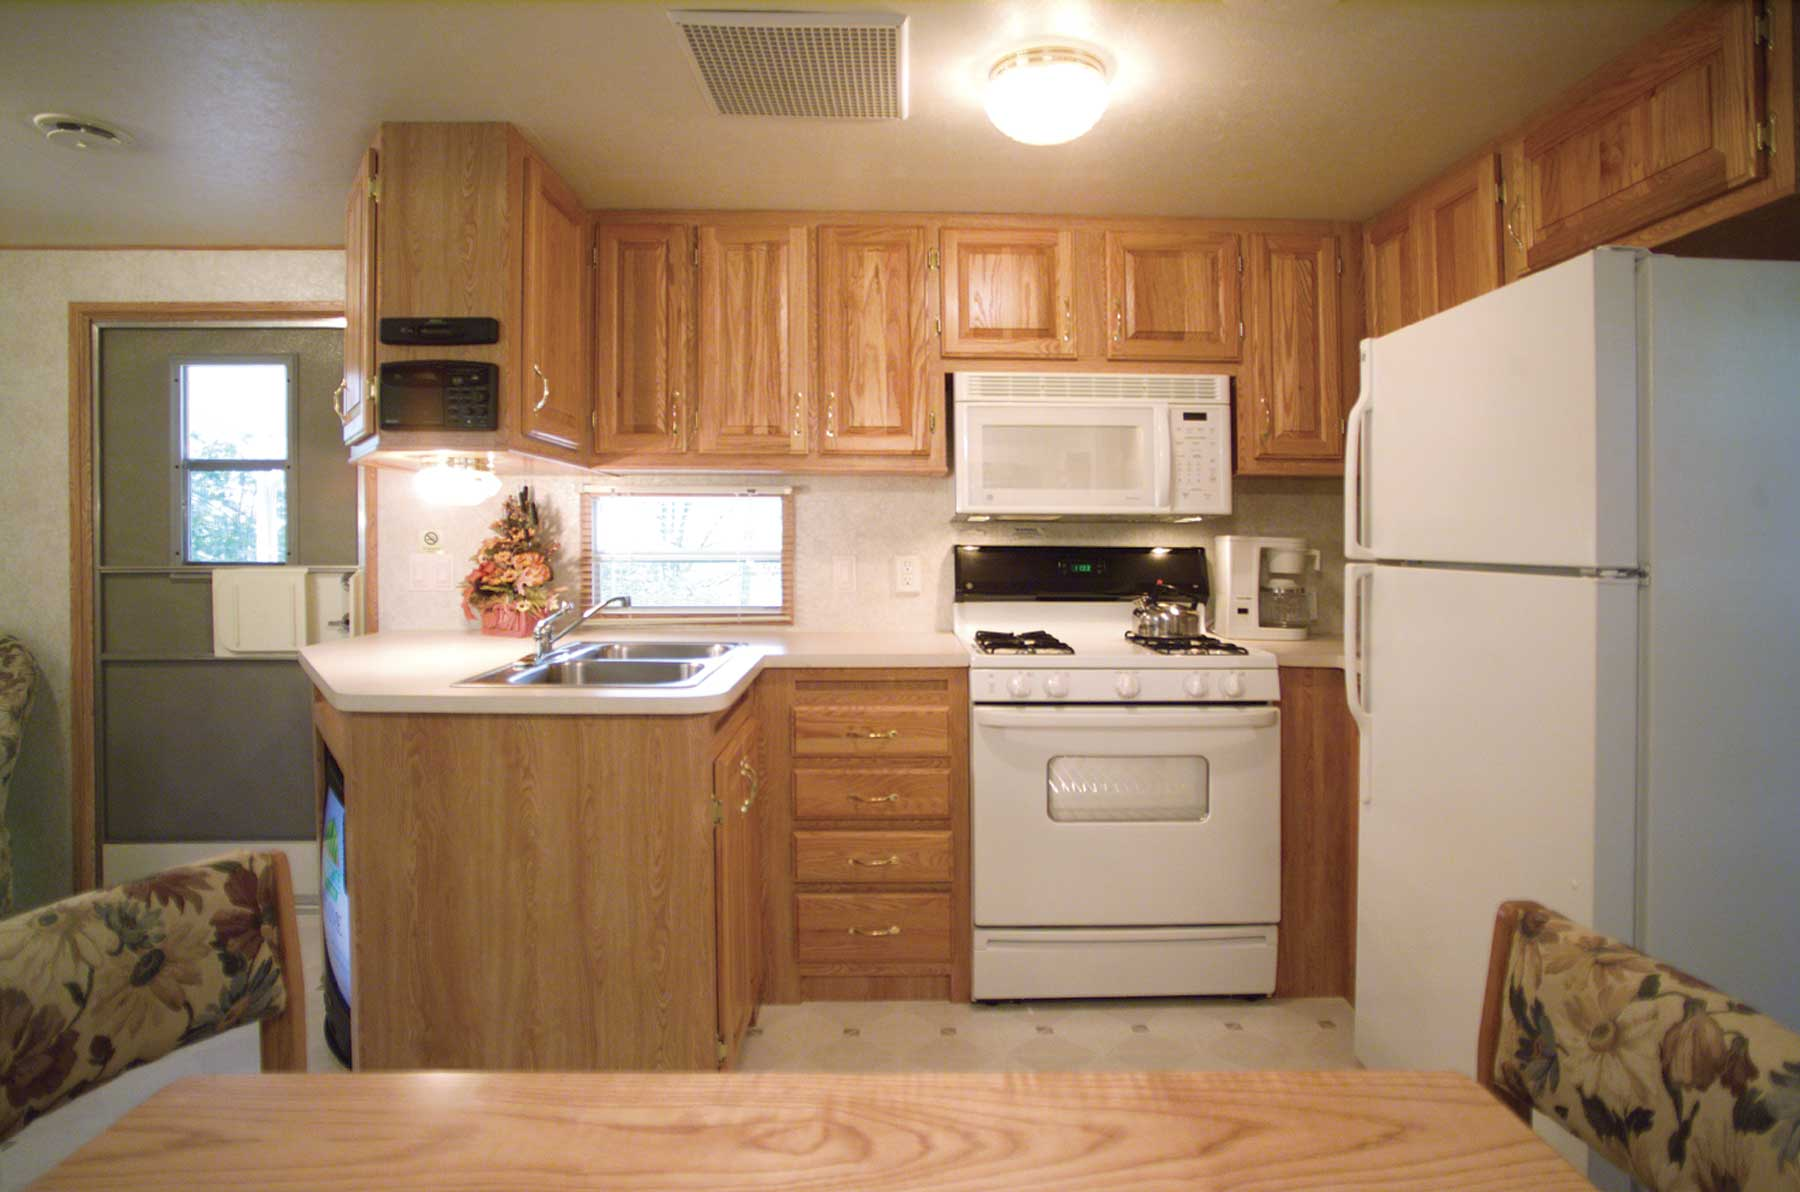 Every kitchen is equipped with microwave, stove/oven & refrigerator